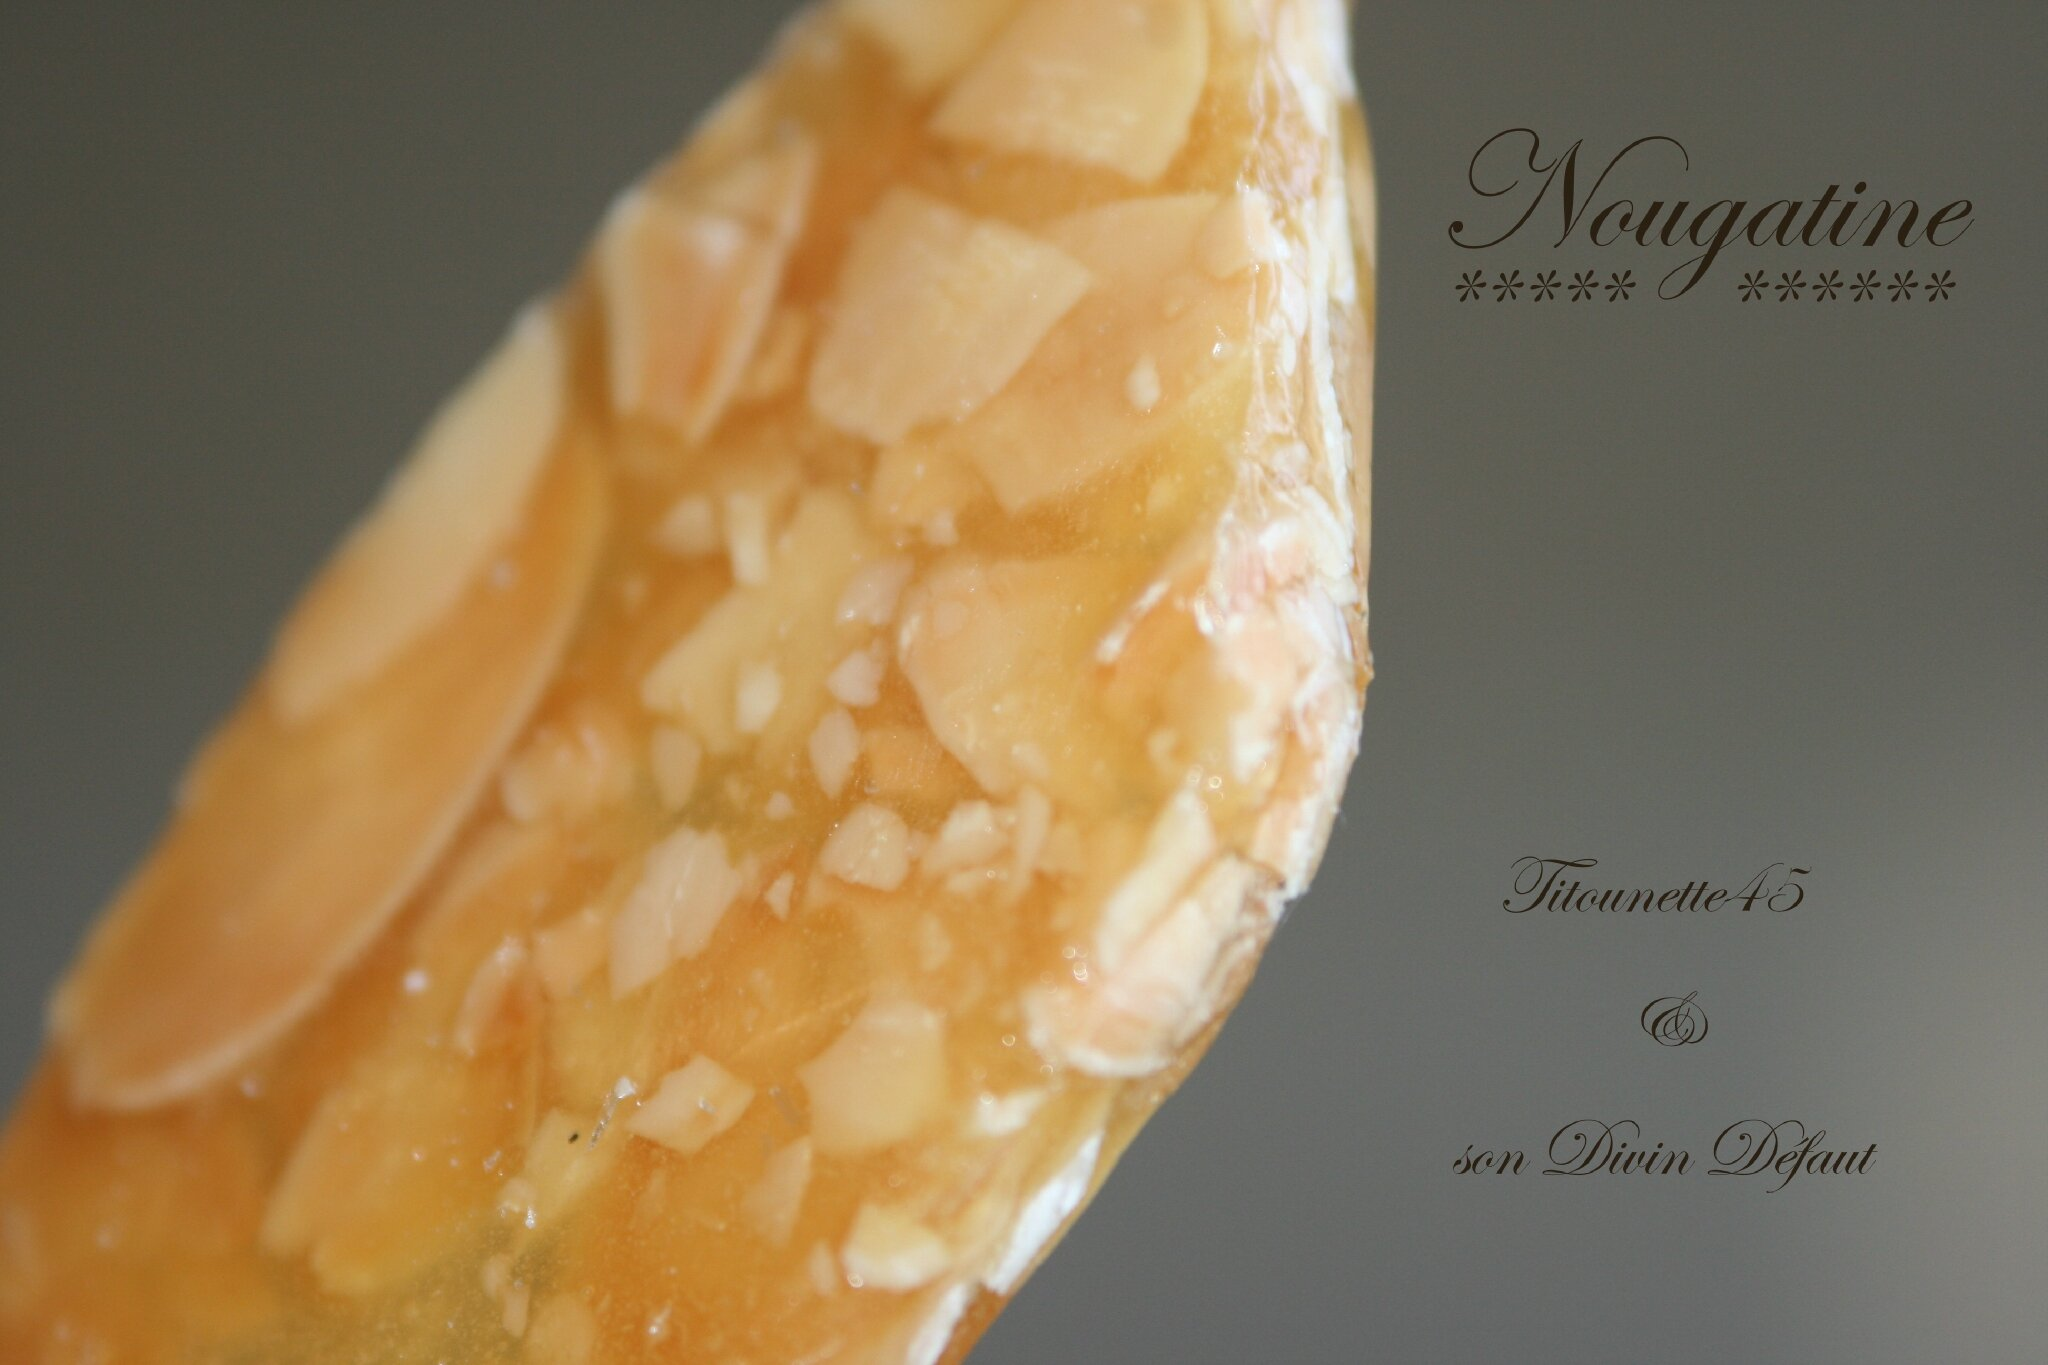 photostitounette 027